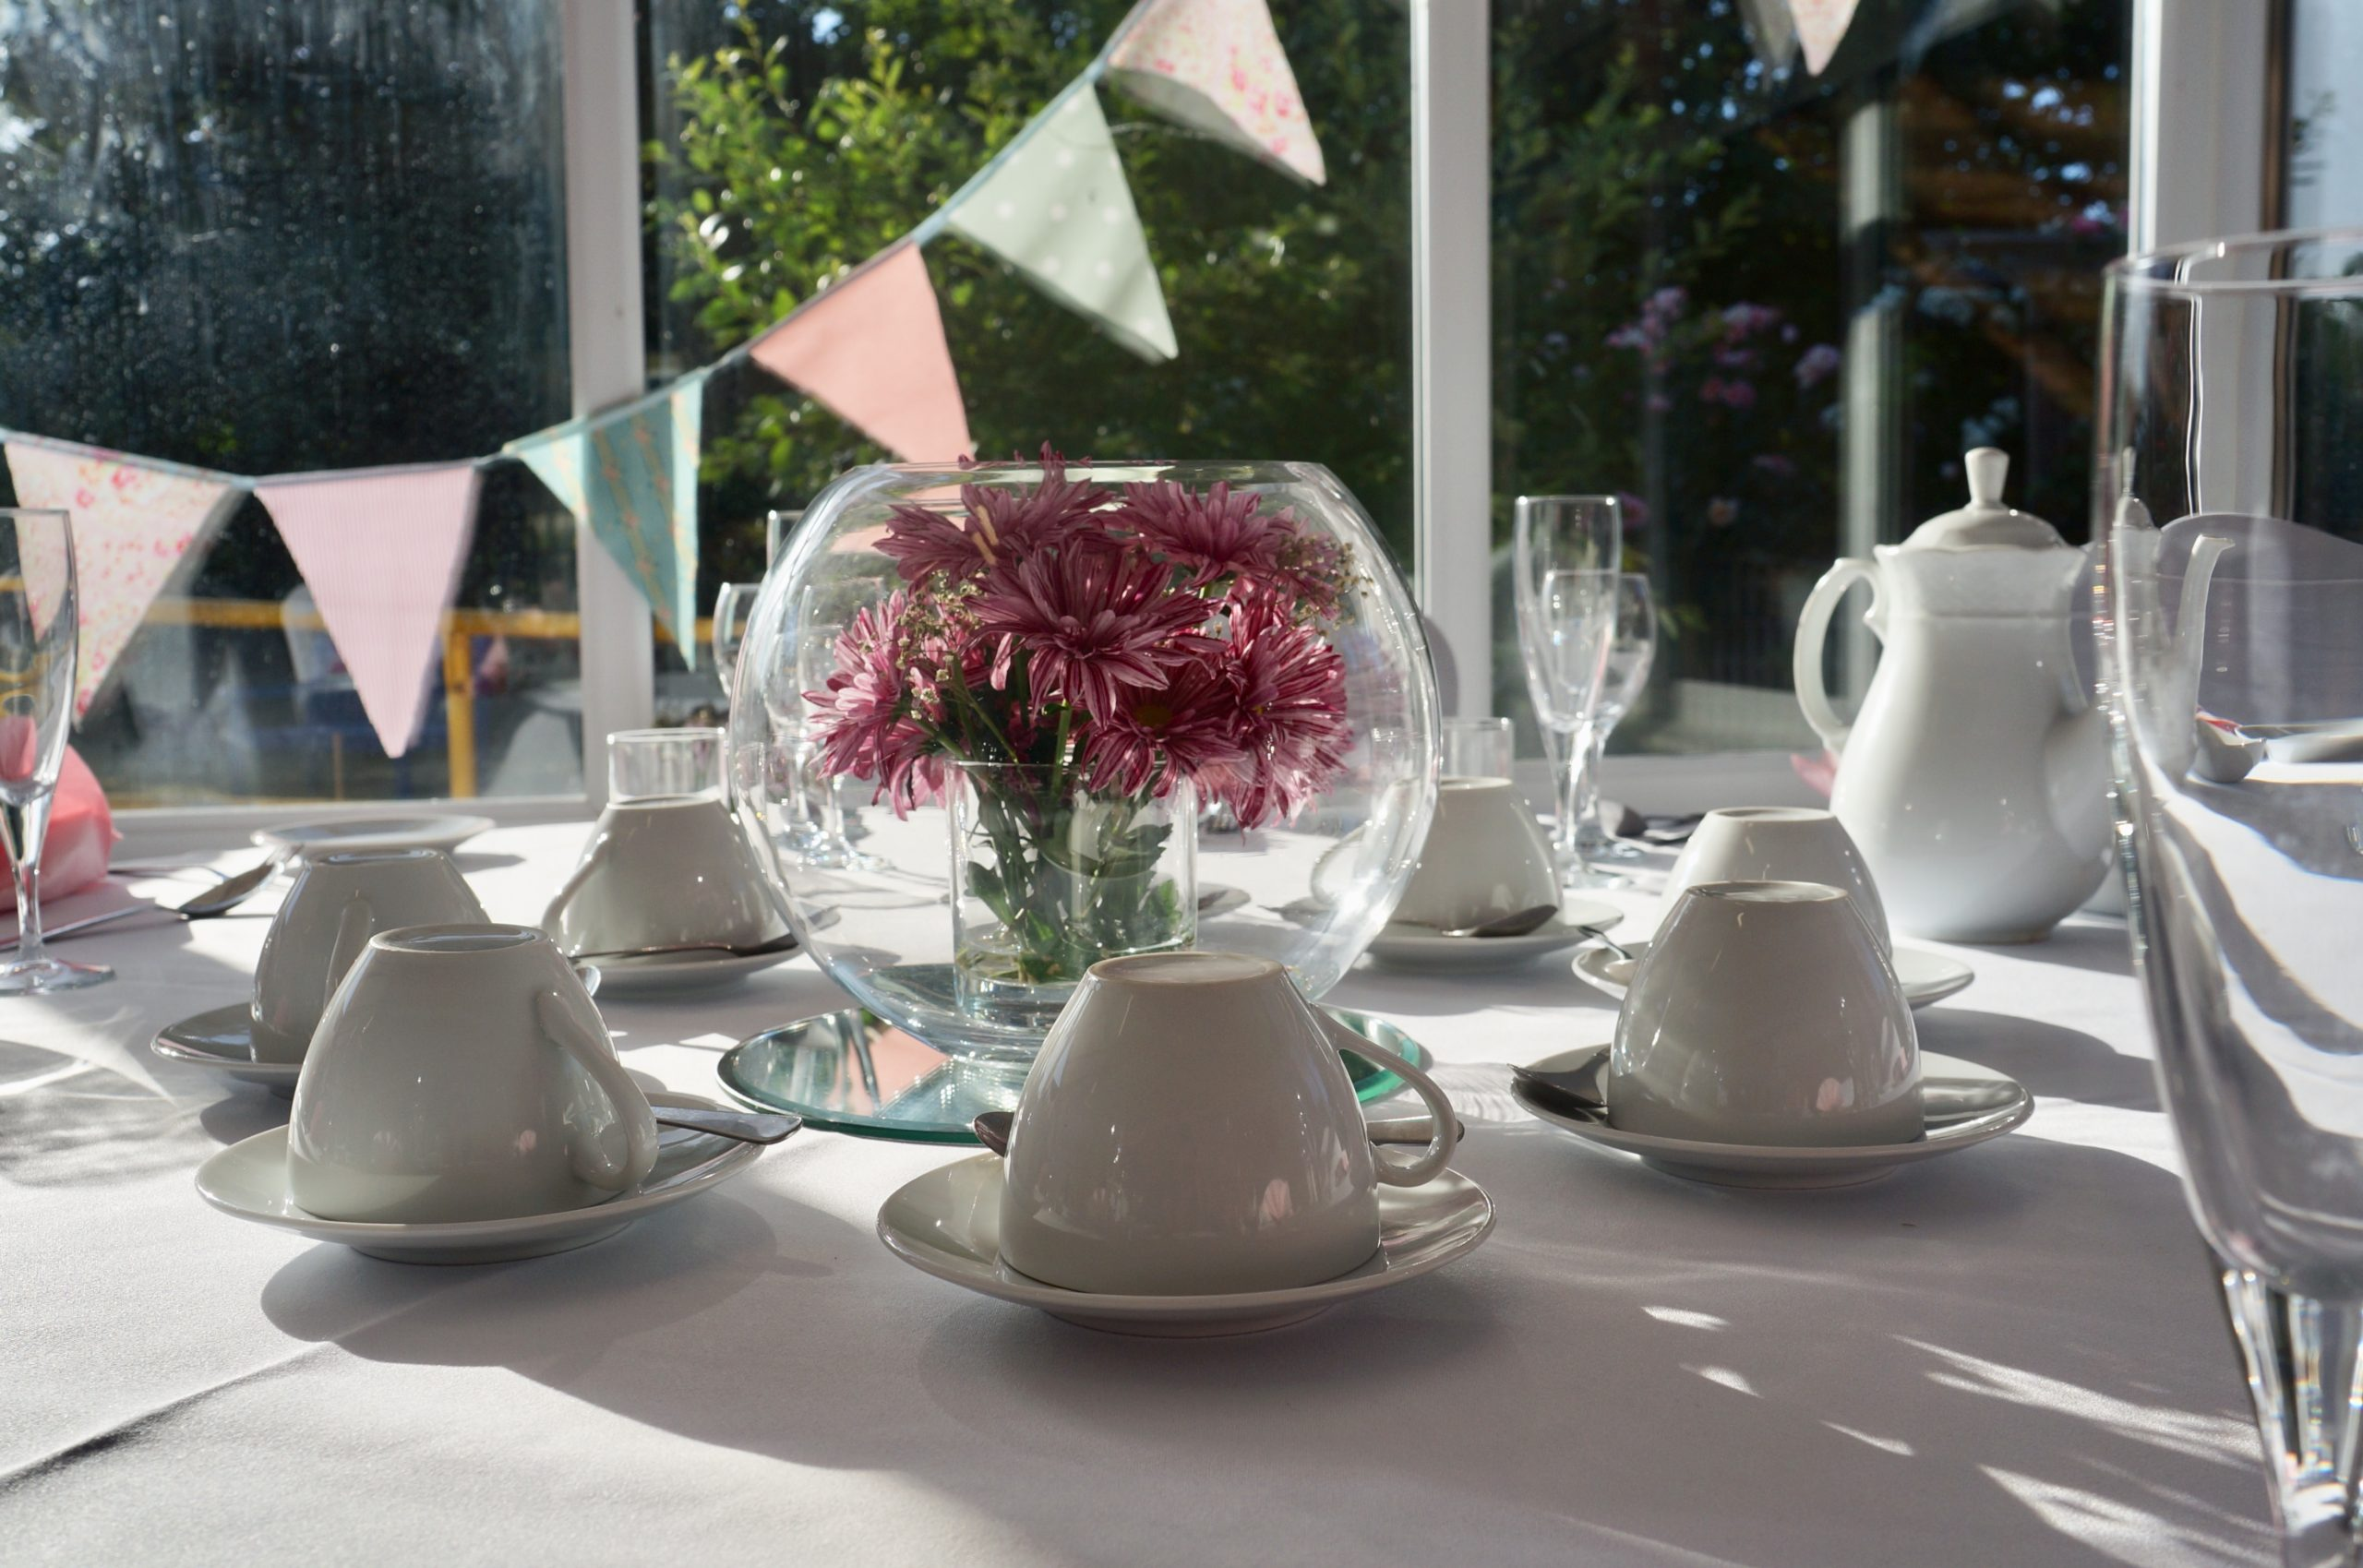 http://A%20close-up%20of%20an%20afternoon%20tea%20table%20setting.%20The%20sun%20is%20shining%20through%20the%20glass%20centrepiece%20filled%20with%20pink%20flowers%20and%20there%20is%20bunting%20and%20a%20view%20of%20the%20sensory%20garden%20in%20the%20background.